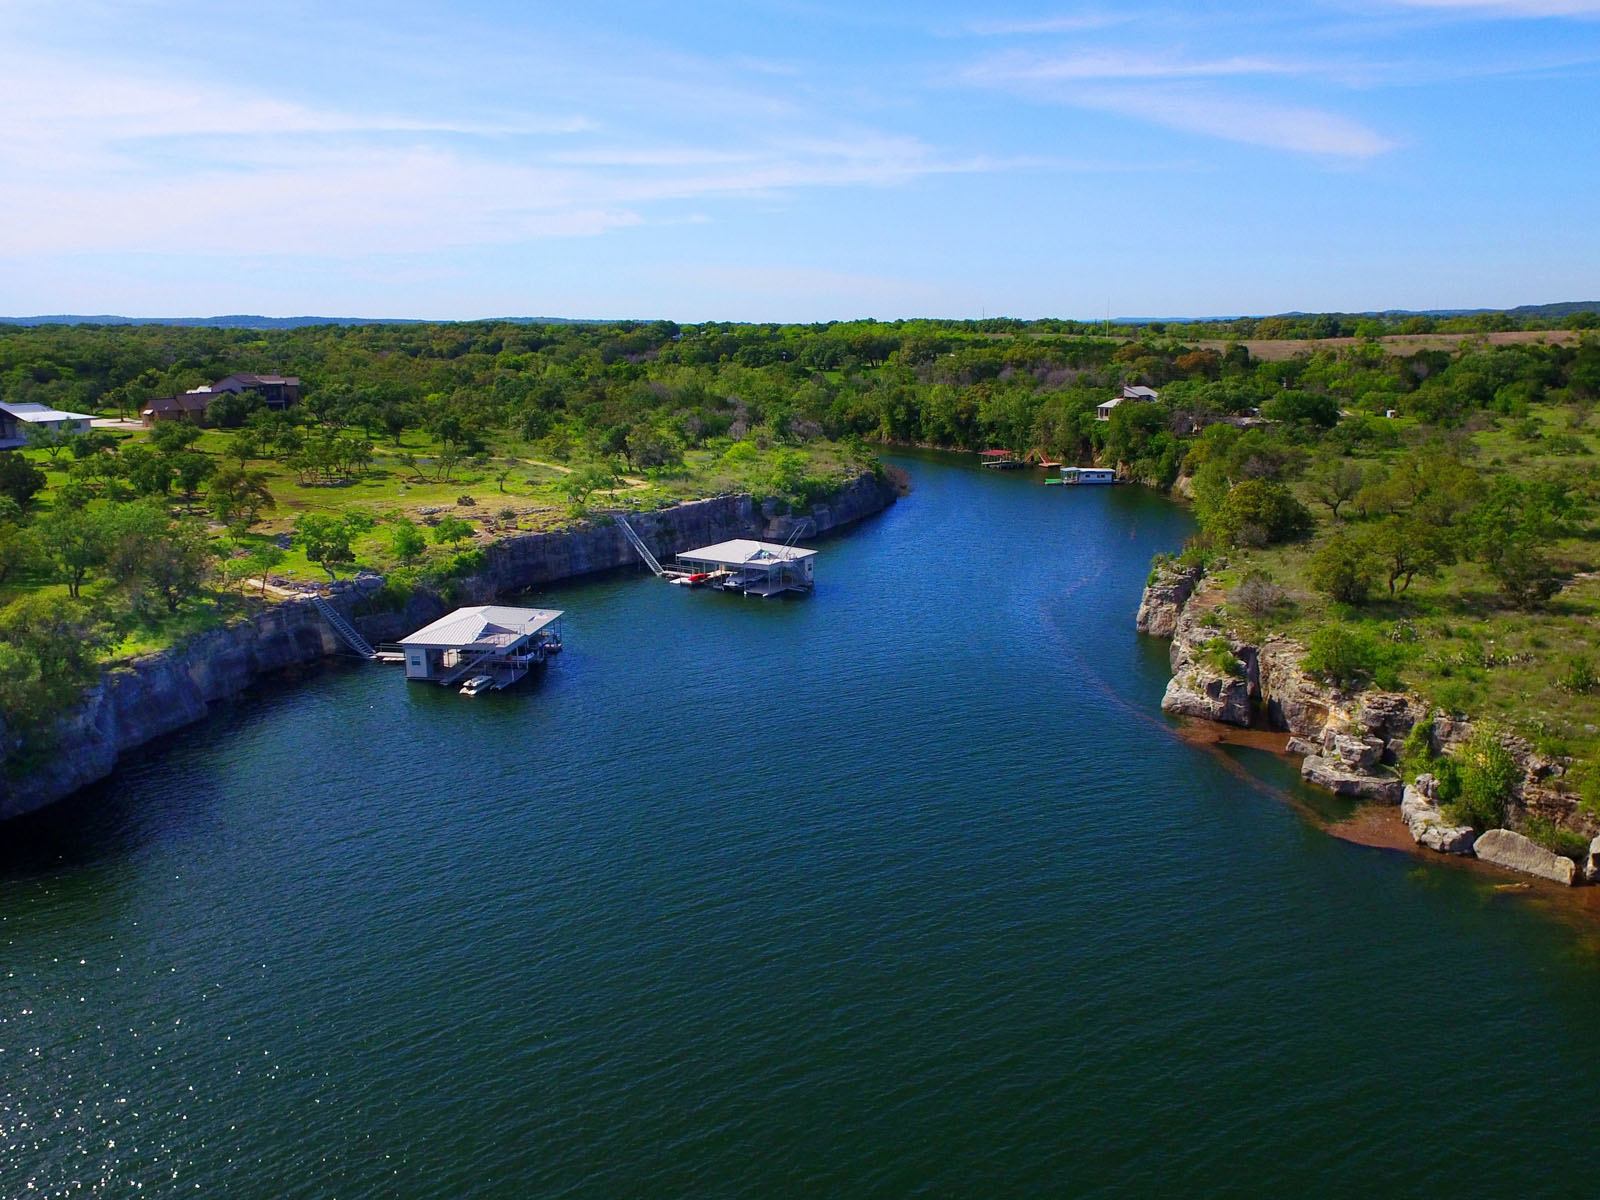 Land for Sale at Beautiful Lot in a Tranquil Community 22713 Mary Nell Ln Spicewood, Texas 78669 United States